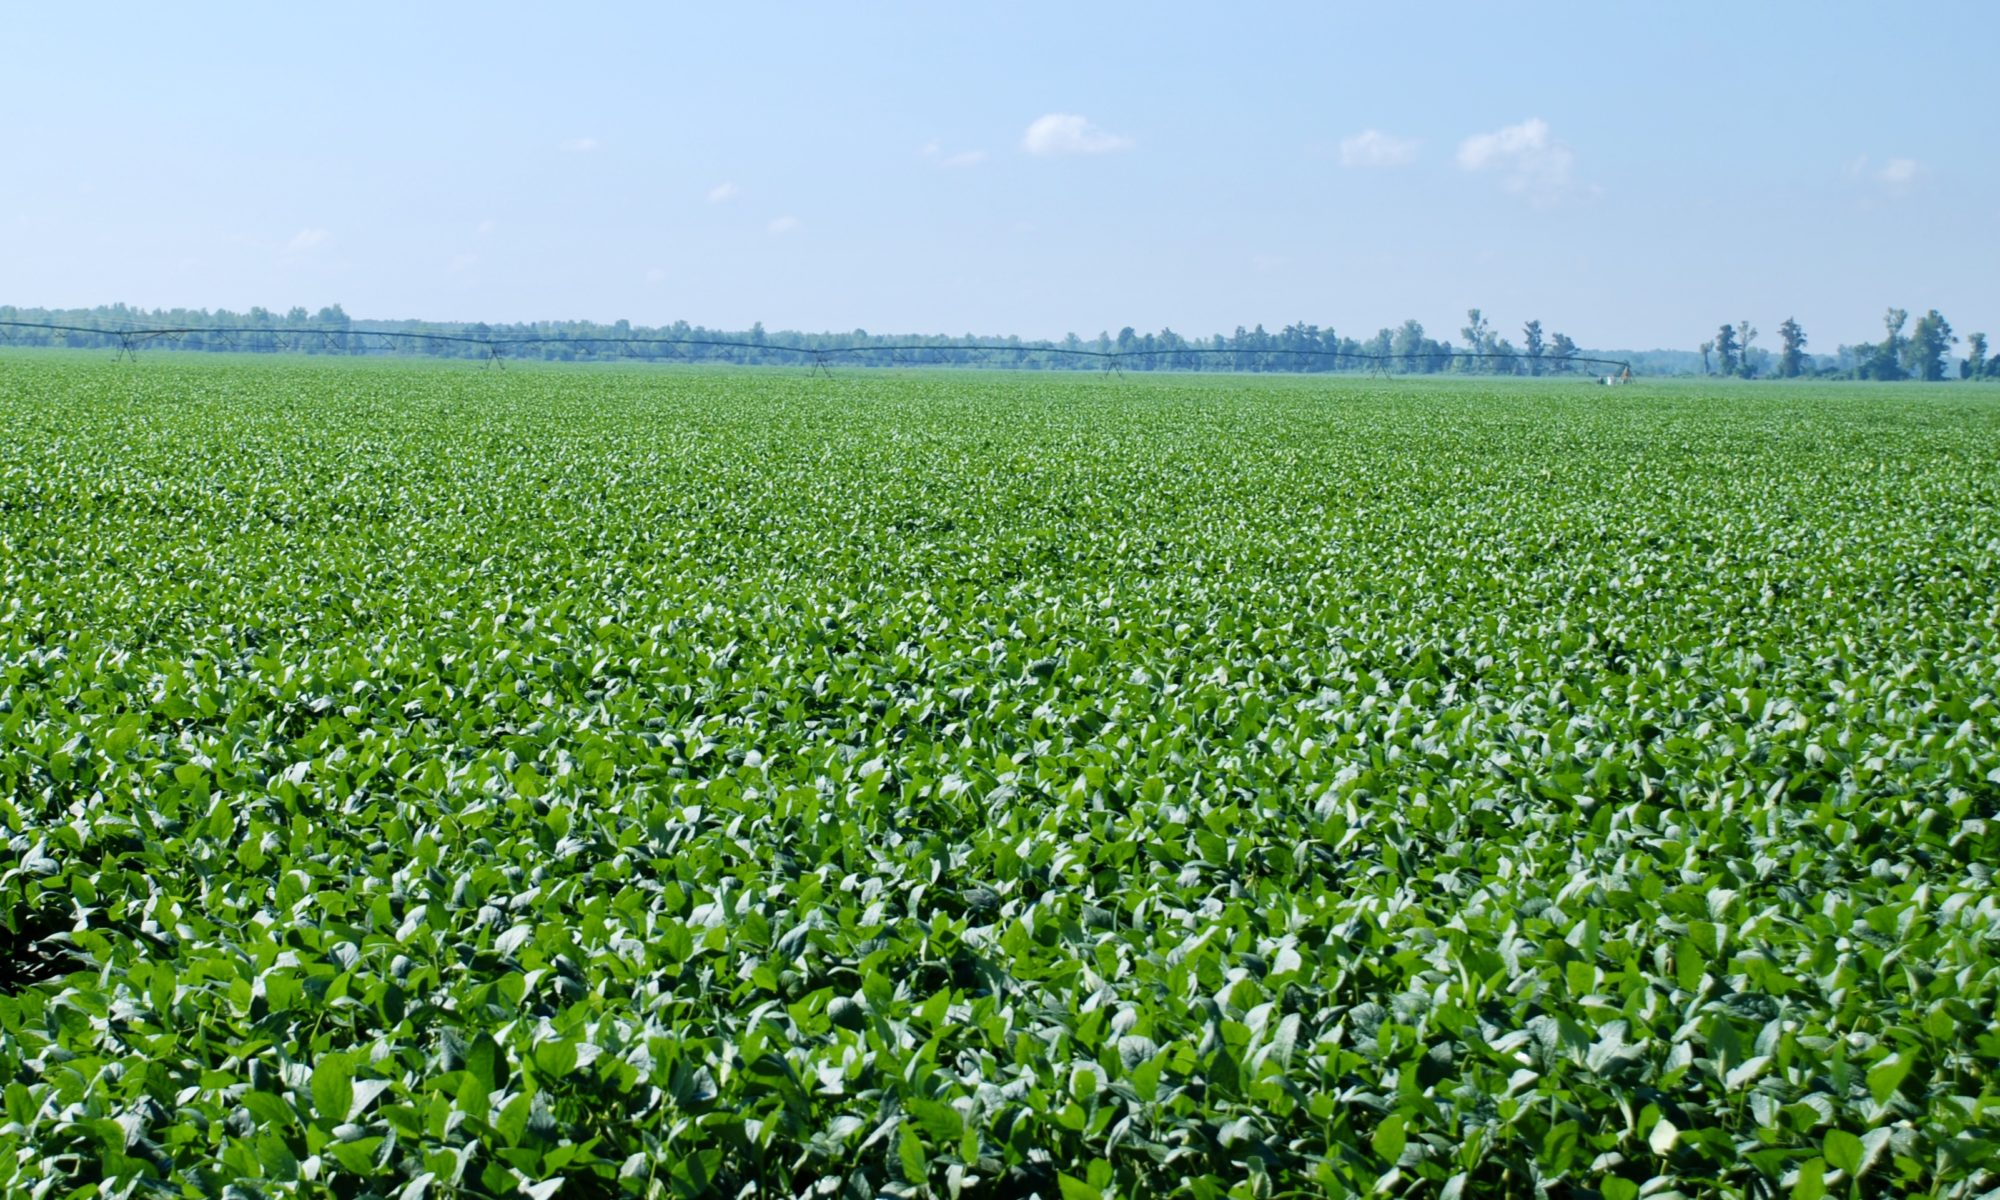 Picture of soybean field